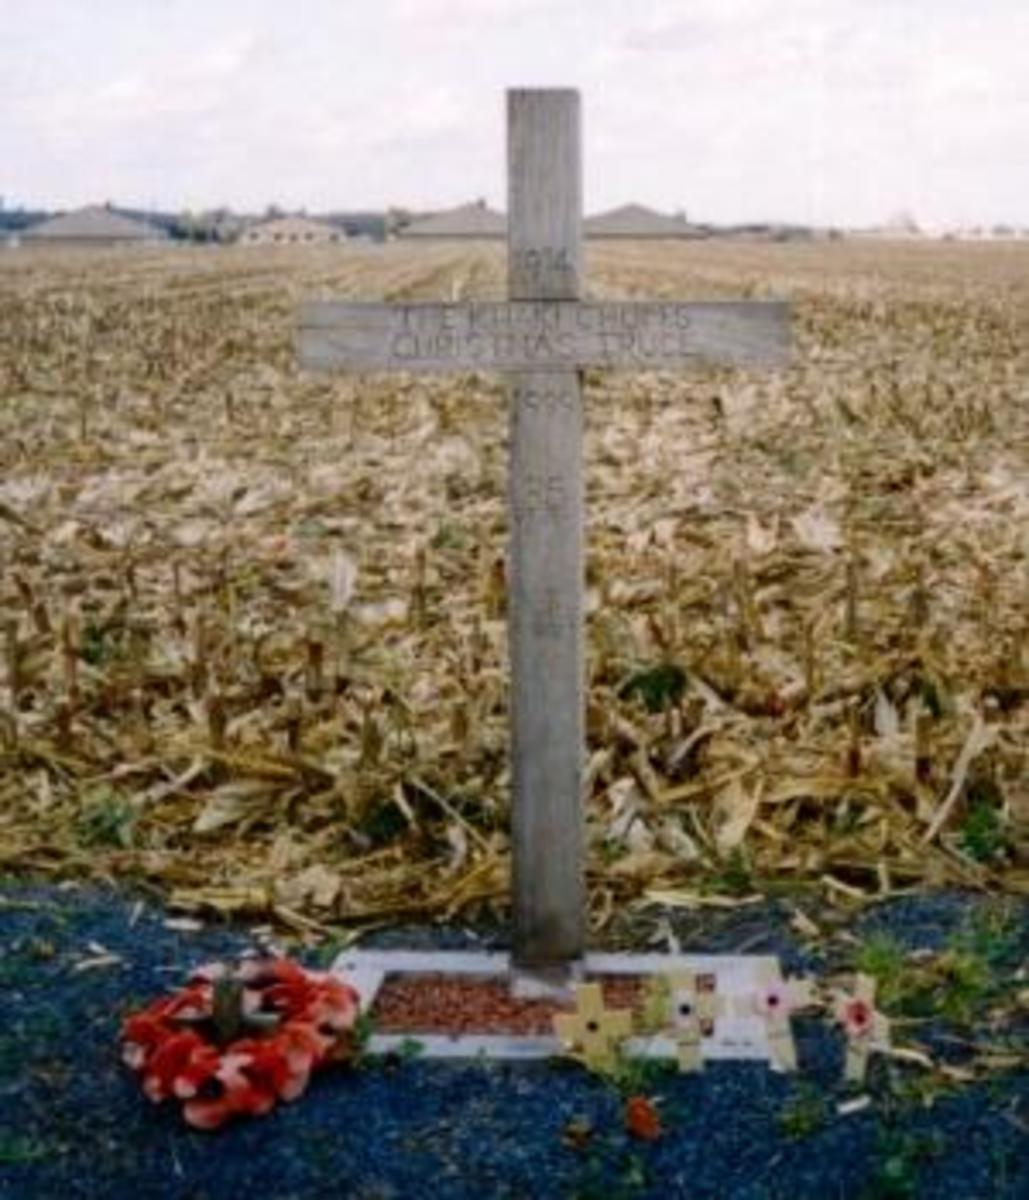 Christmas Truce cross erected in Belgium (Credit: Corbis Images)